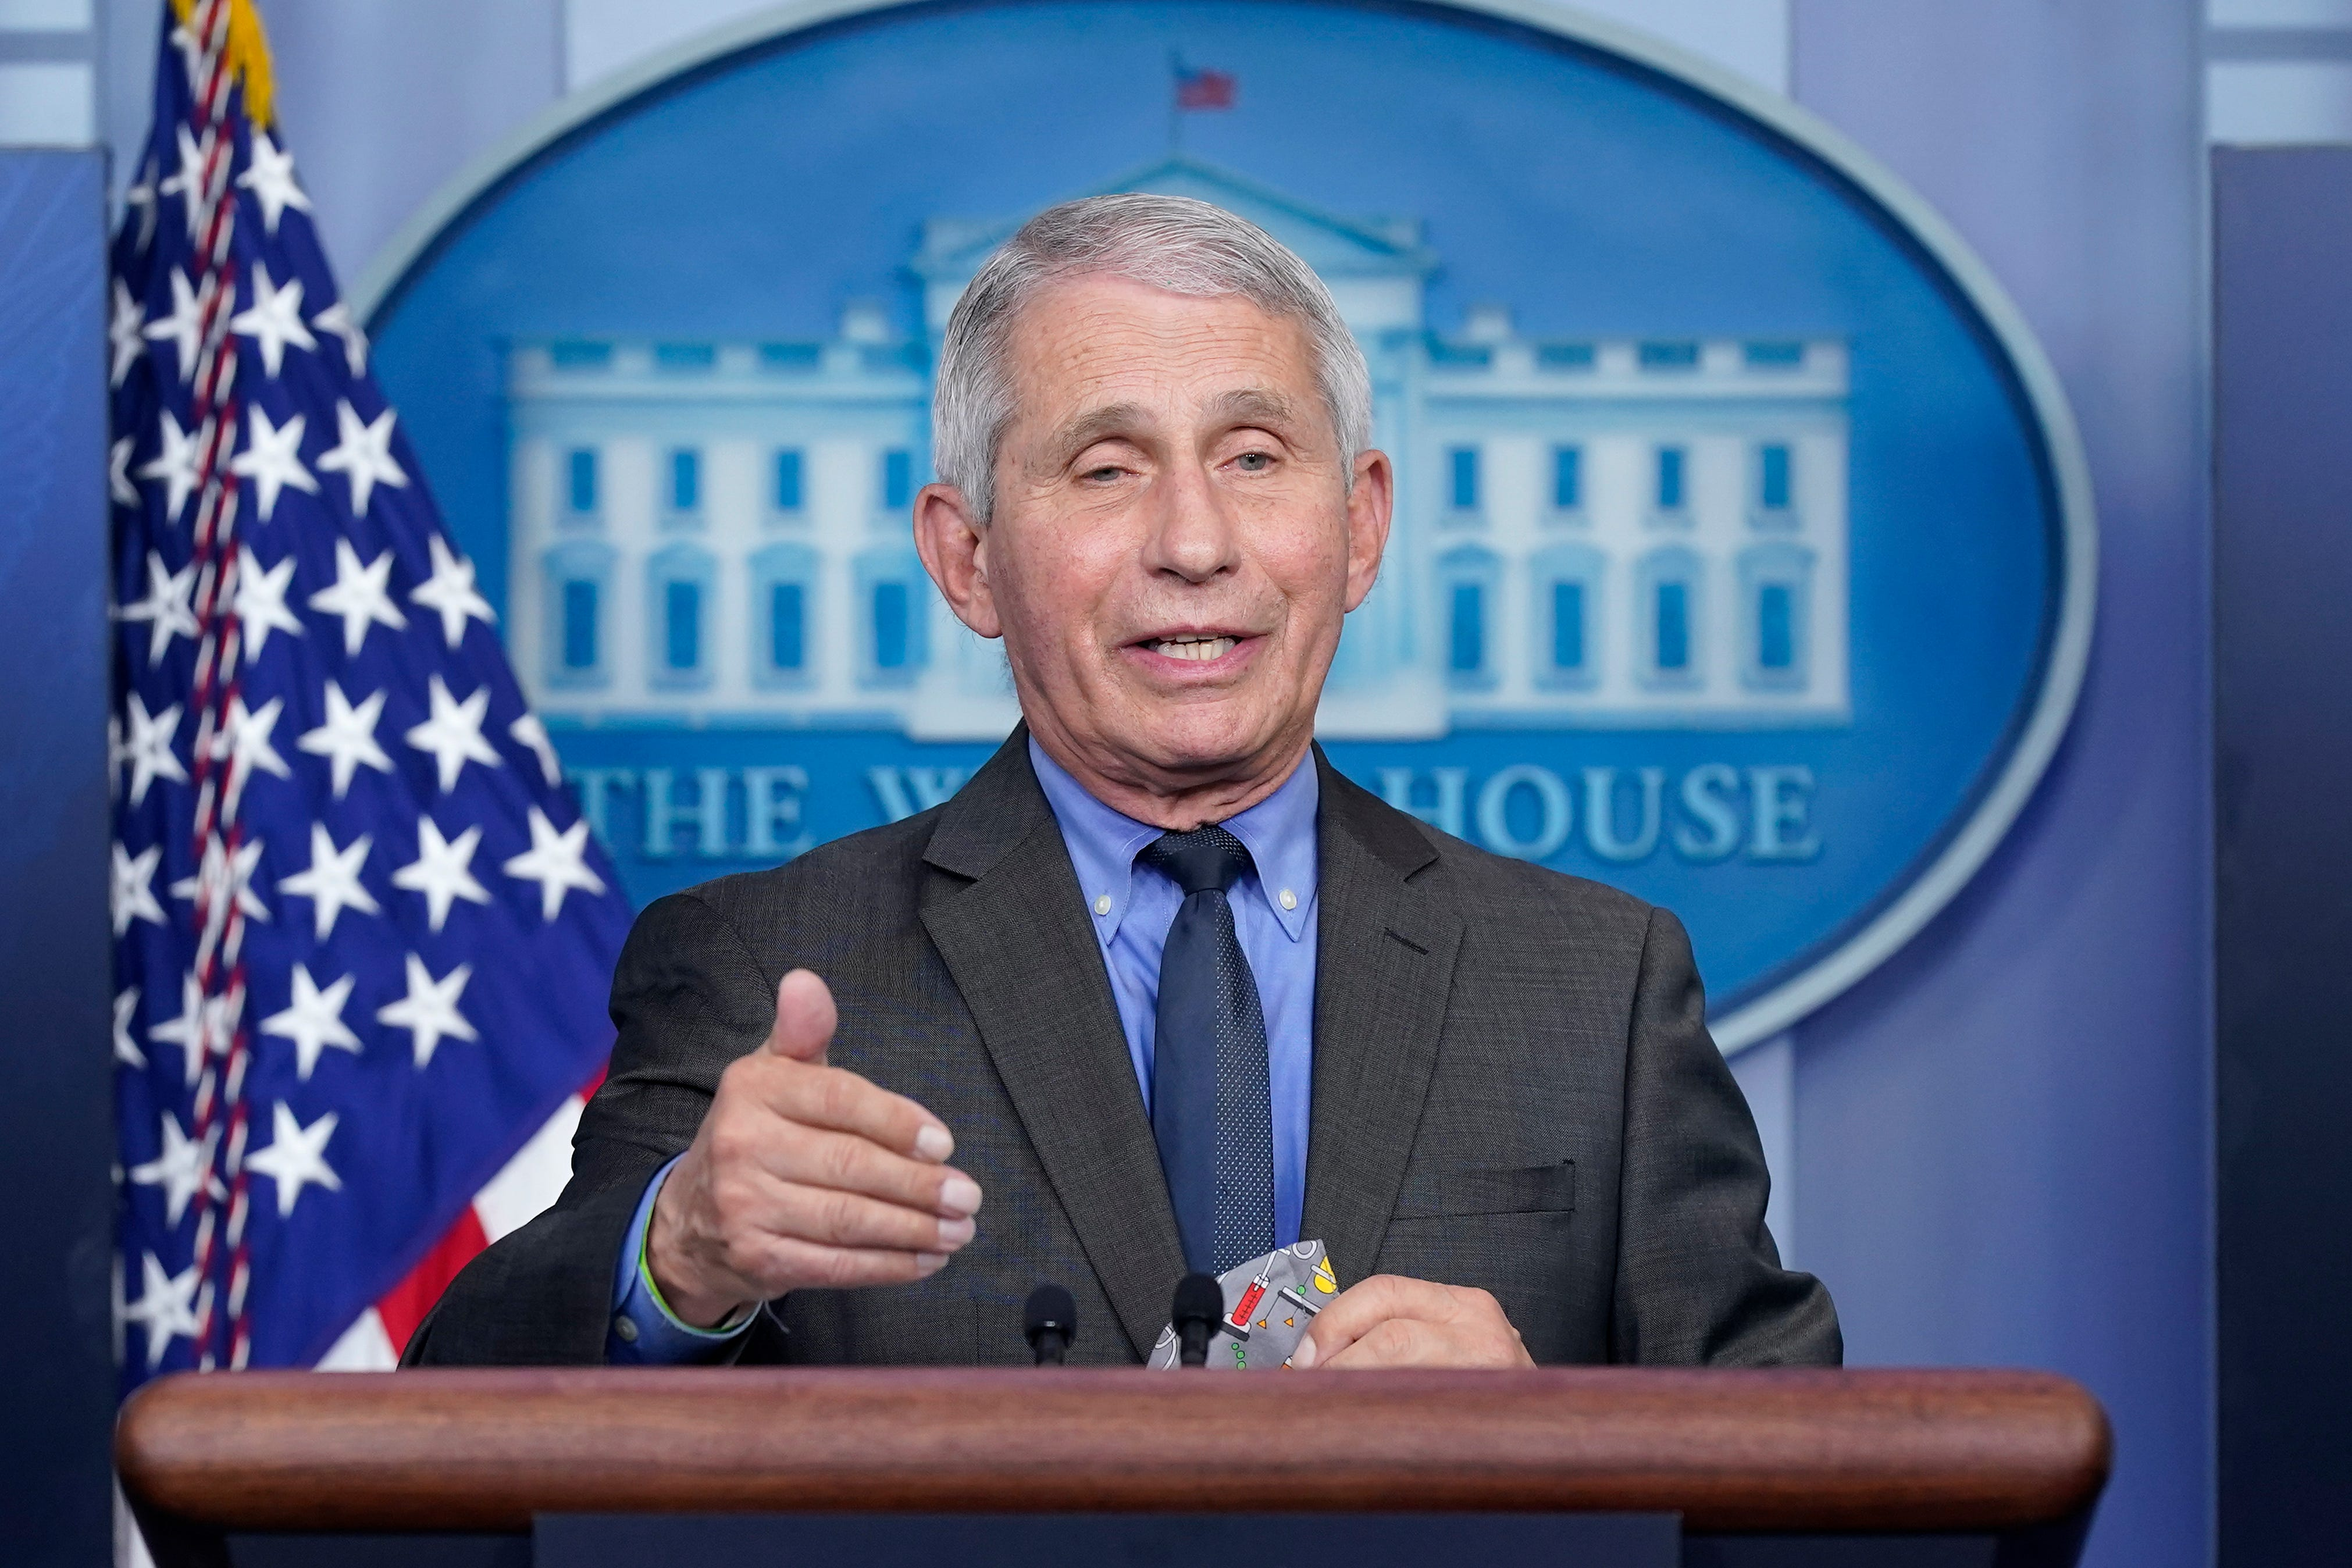 Anthony Fauci's pandemic emails: 'All is well despite some crazy people in this world' 2